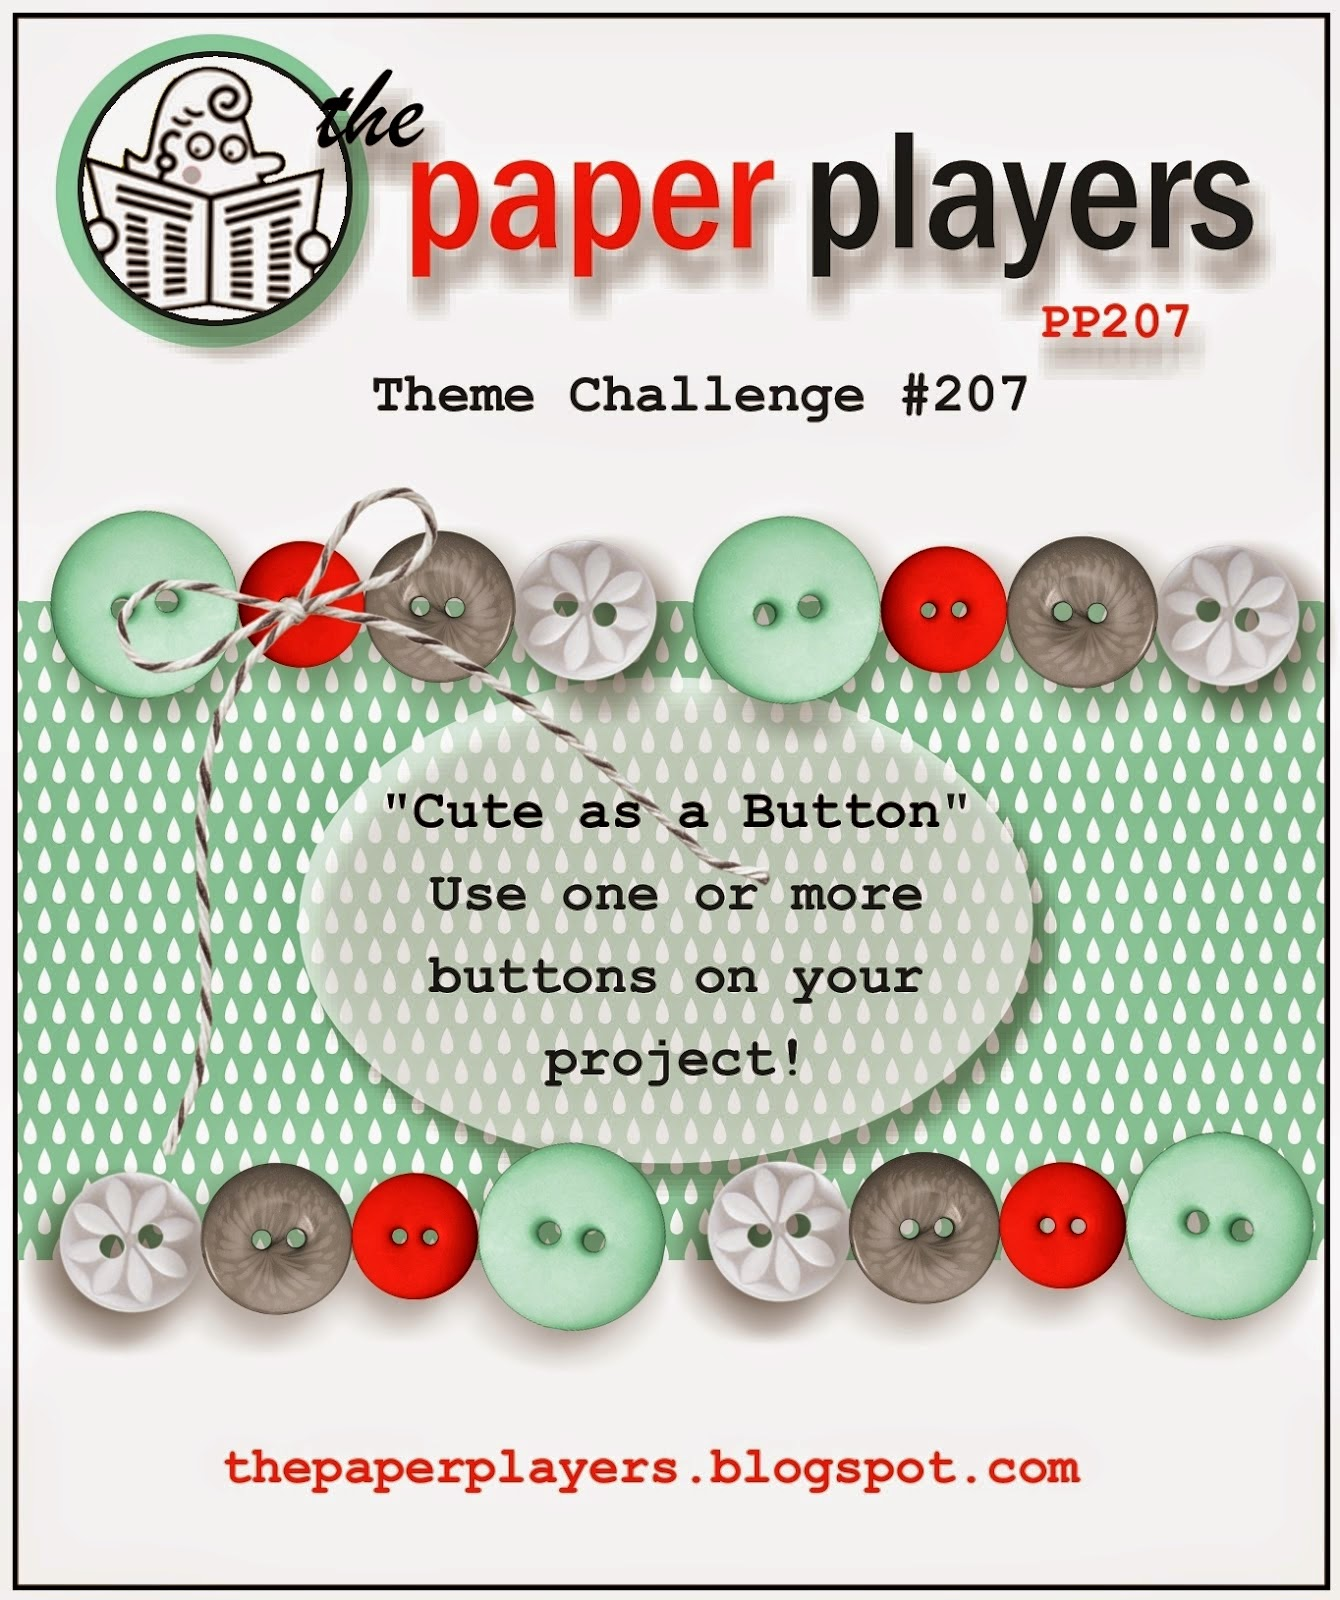 http://thepaperplayers.blogspot.com.au/2014/08/the-paper-players-207-theme-challenge.html